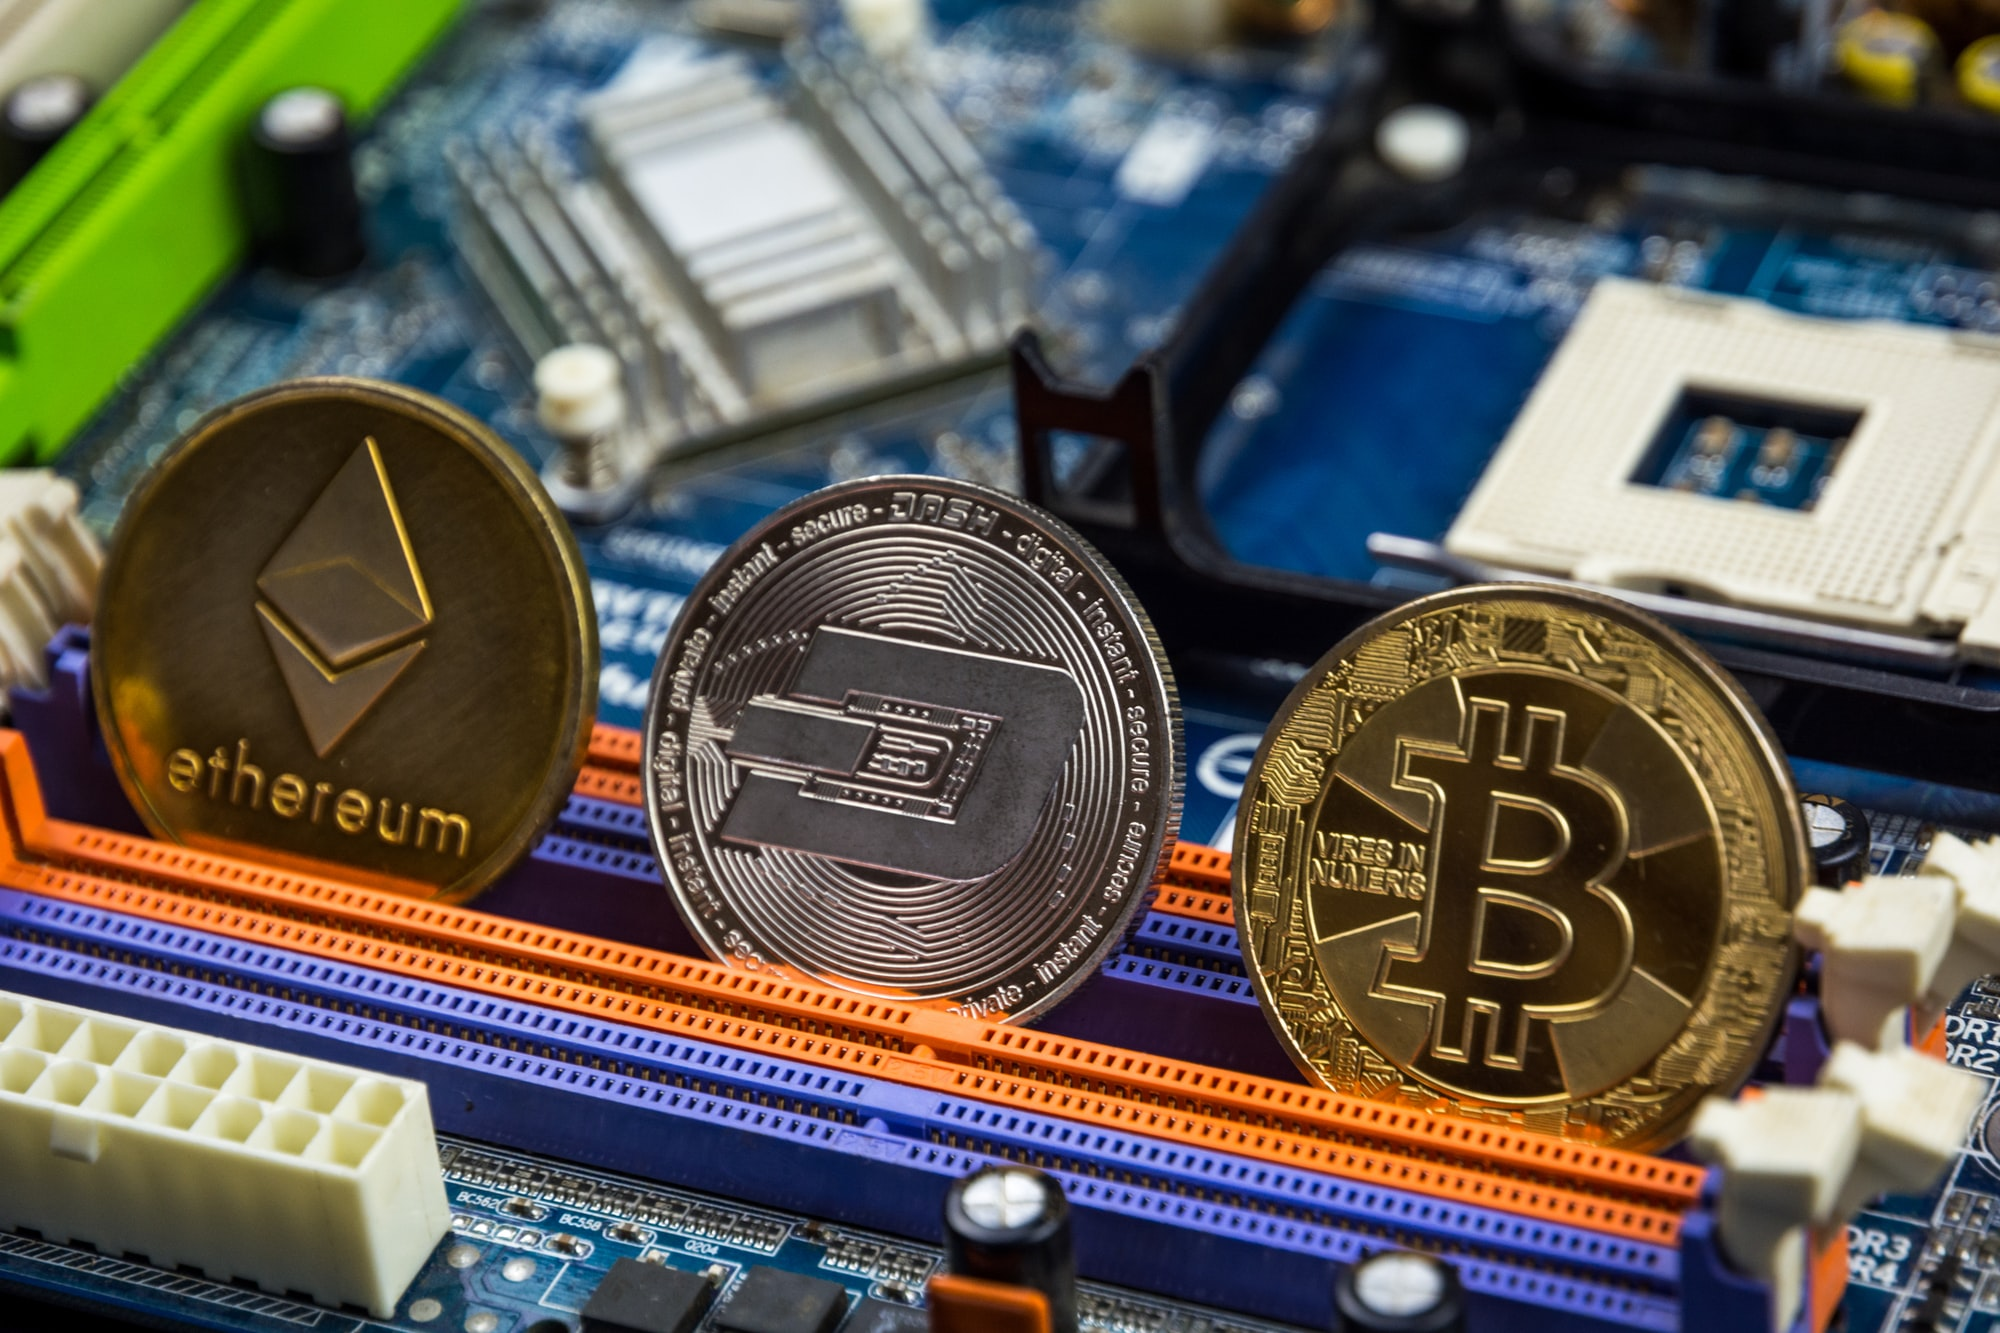 $600 Million in Cryptocurrency Stolen in a Major Crypto Heist